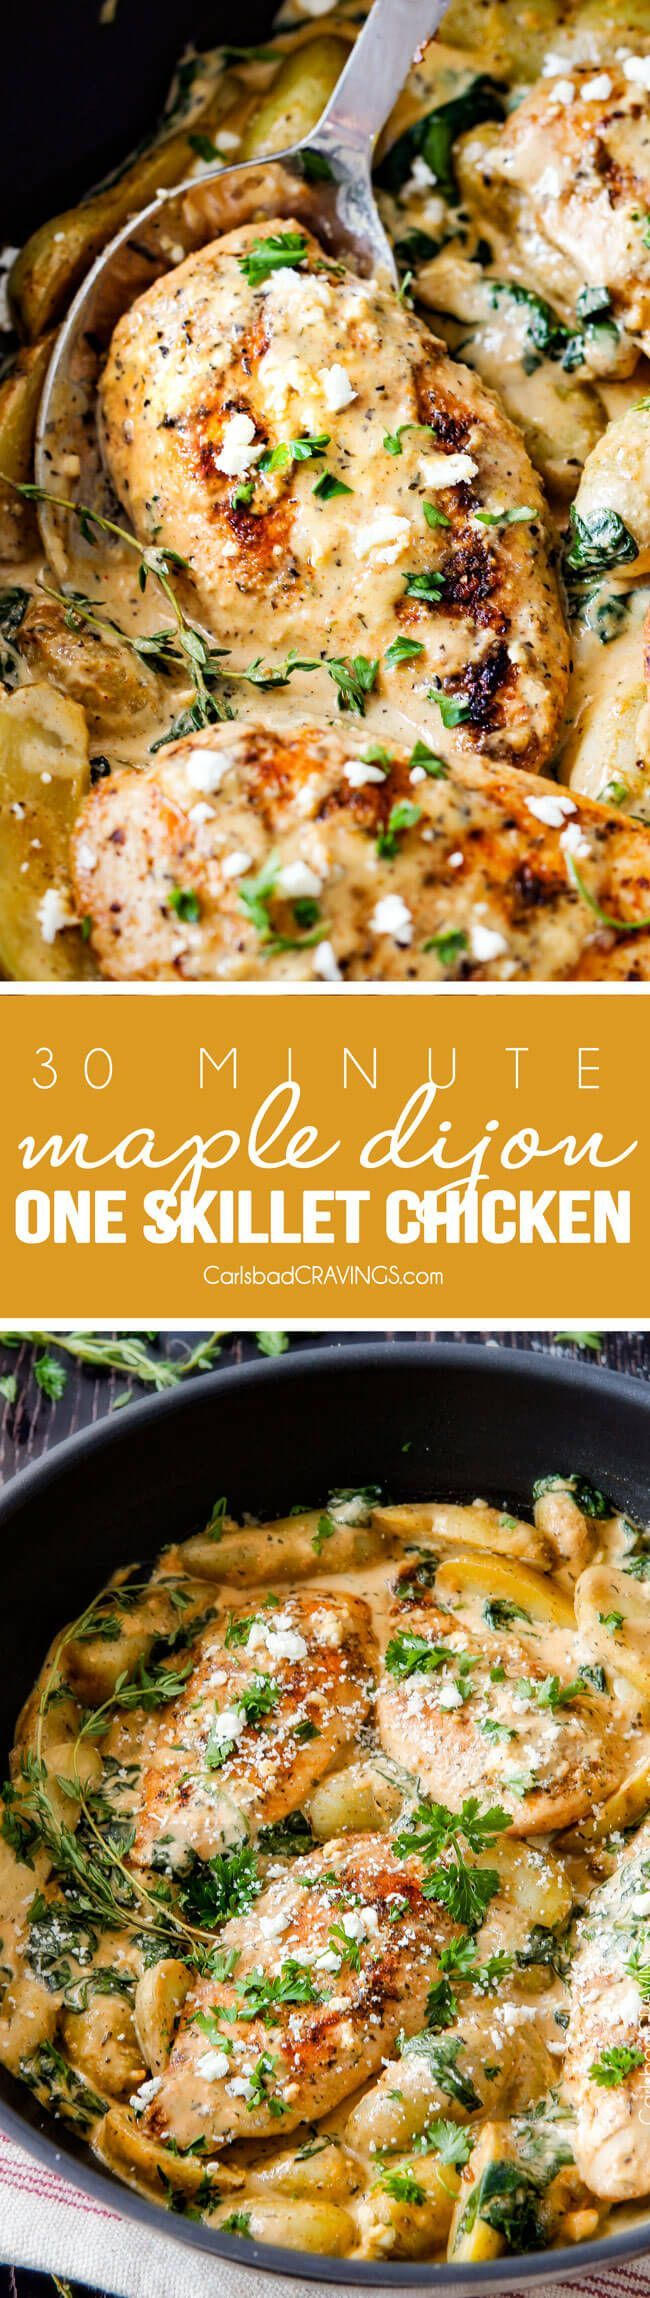 30 Minute Maple Dijon Chicken Skillet with Fingerling Potatoes and Spinach - this super easy, flavorful one chicken skillet is a meal all in one and is my favorite go-to weeknight meal! My kids love that it has potatoes in it and the creamy maple Dijon sauce is incredible! via @carlsbadcraving